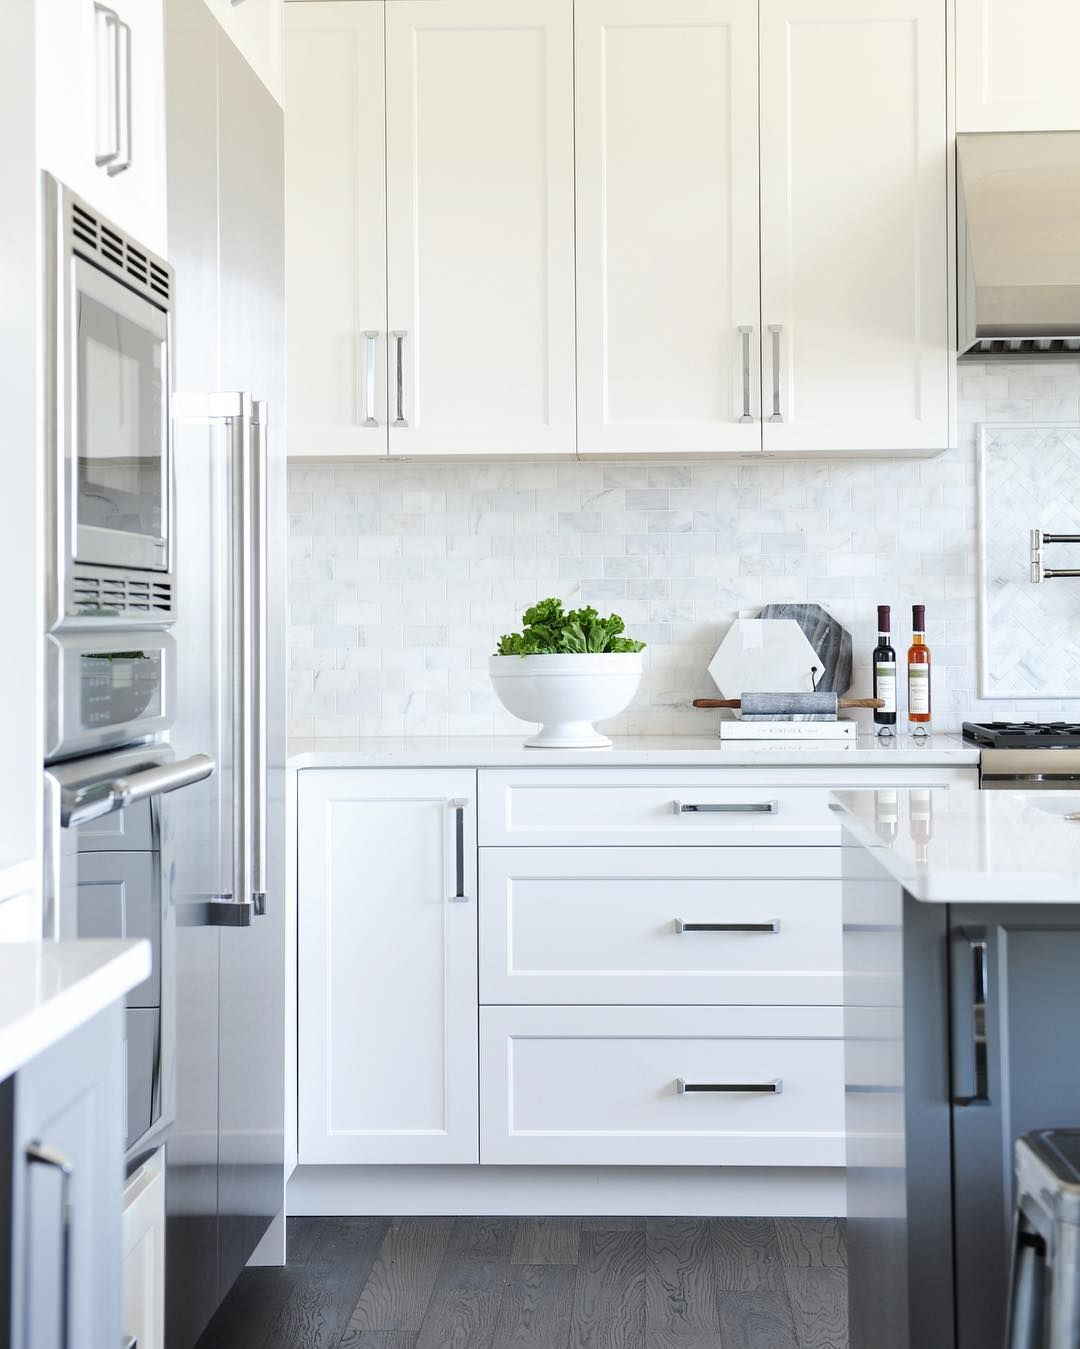 "Kitchen Cabinets Shaker: Amanda Evans On Instagram: ""I Love This Kitchen! White"